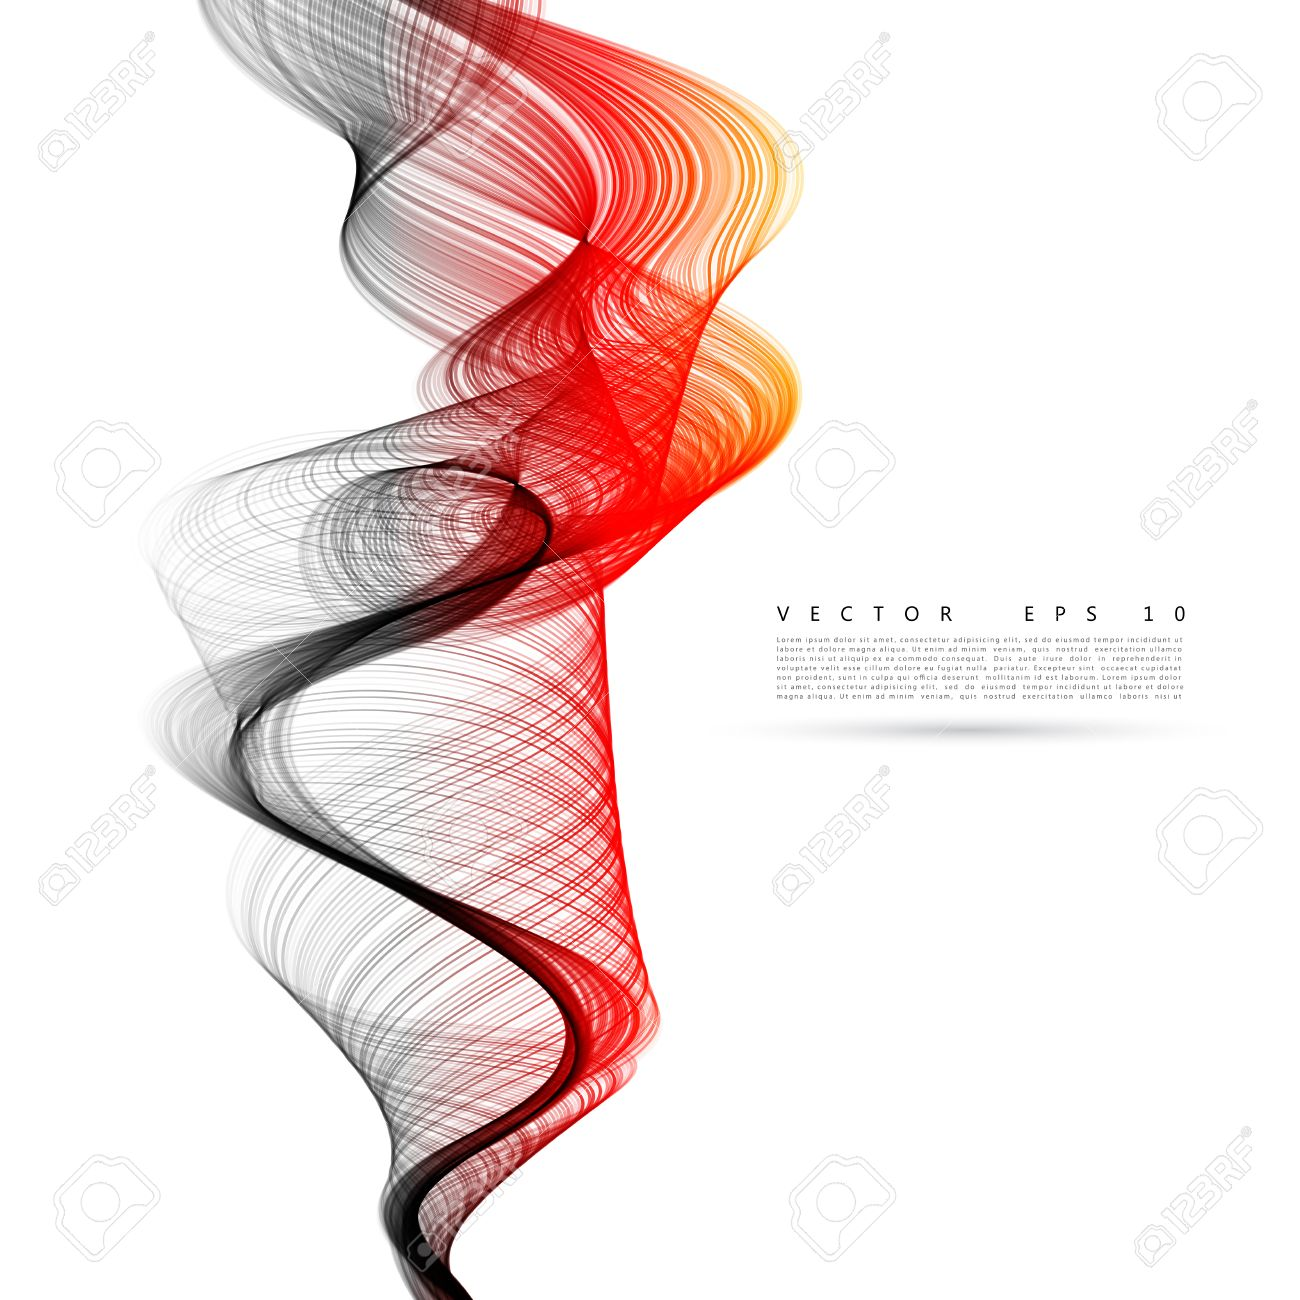 Vector abstract smoke background. Fire smoke waves on transparent background illustration - 46954756